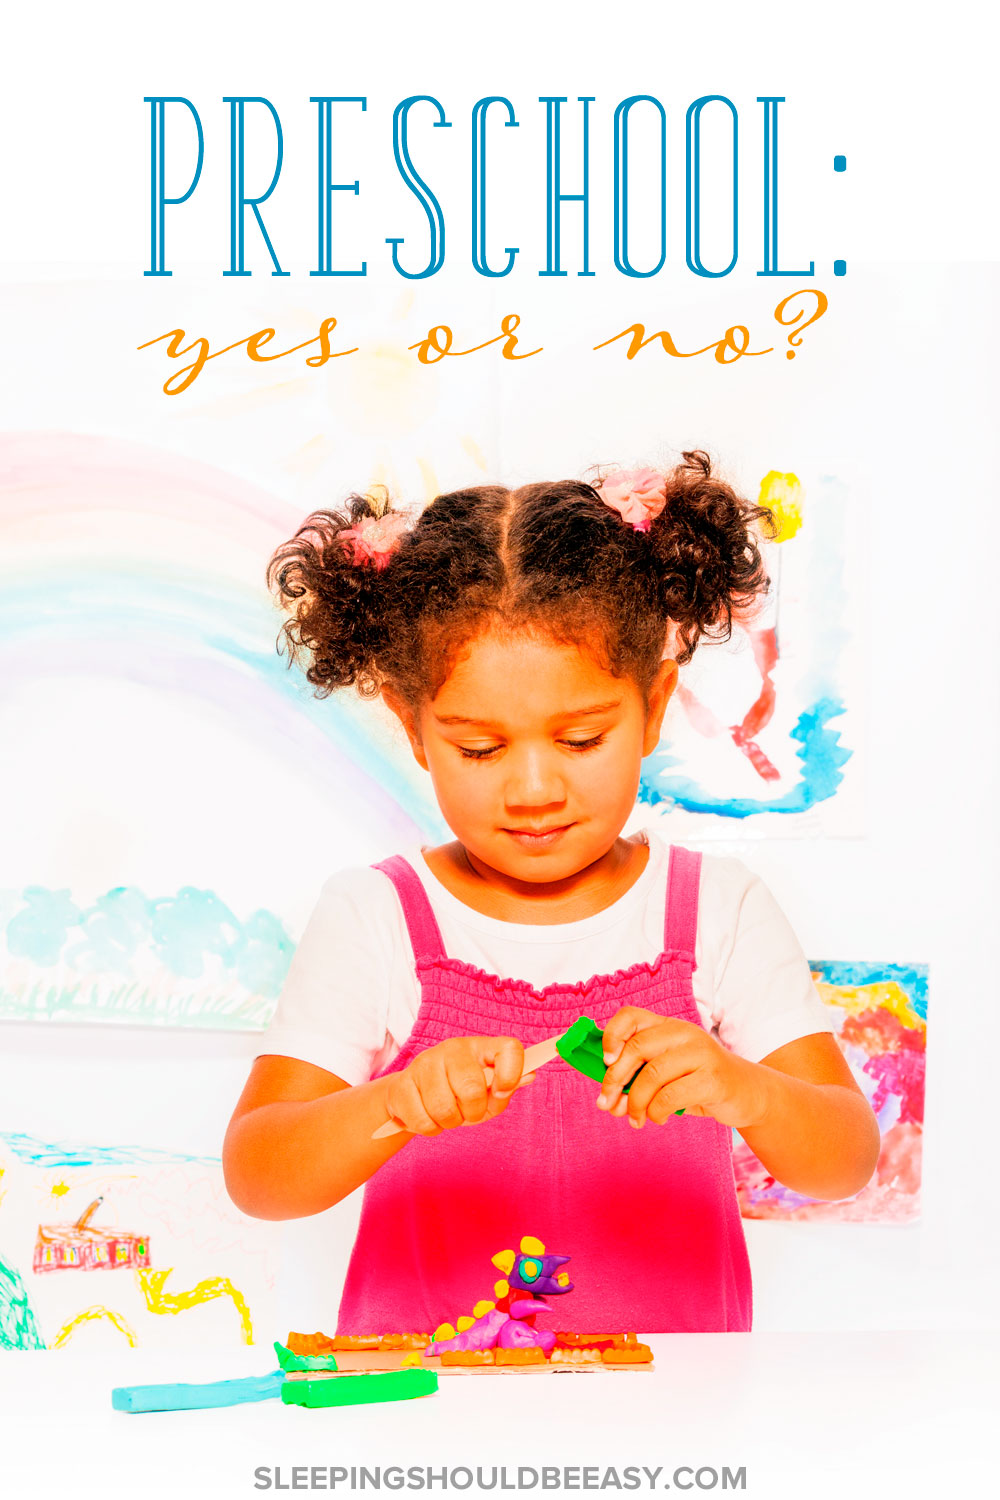 Preschool: Yes or no? Considering sending your child to preschool? Discuss preschool pros and cons and whether you should send your child to preschool.